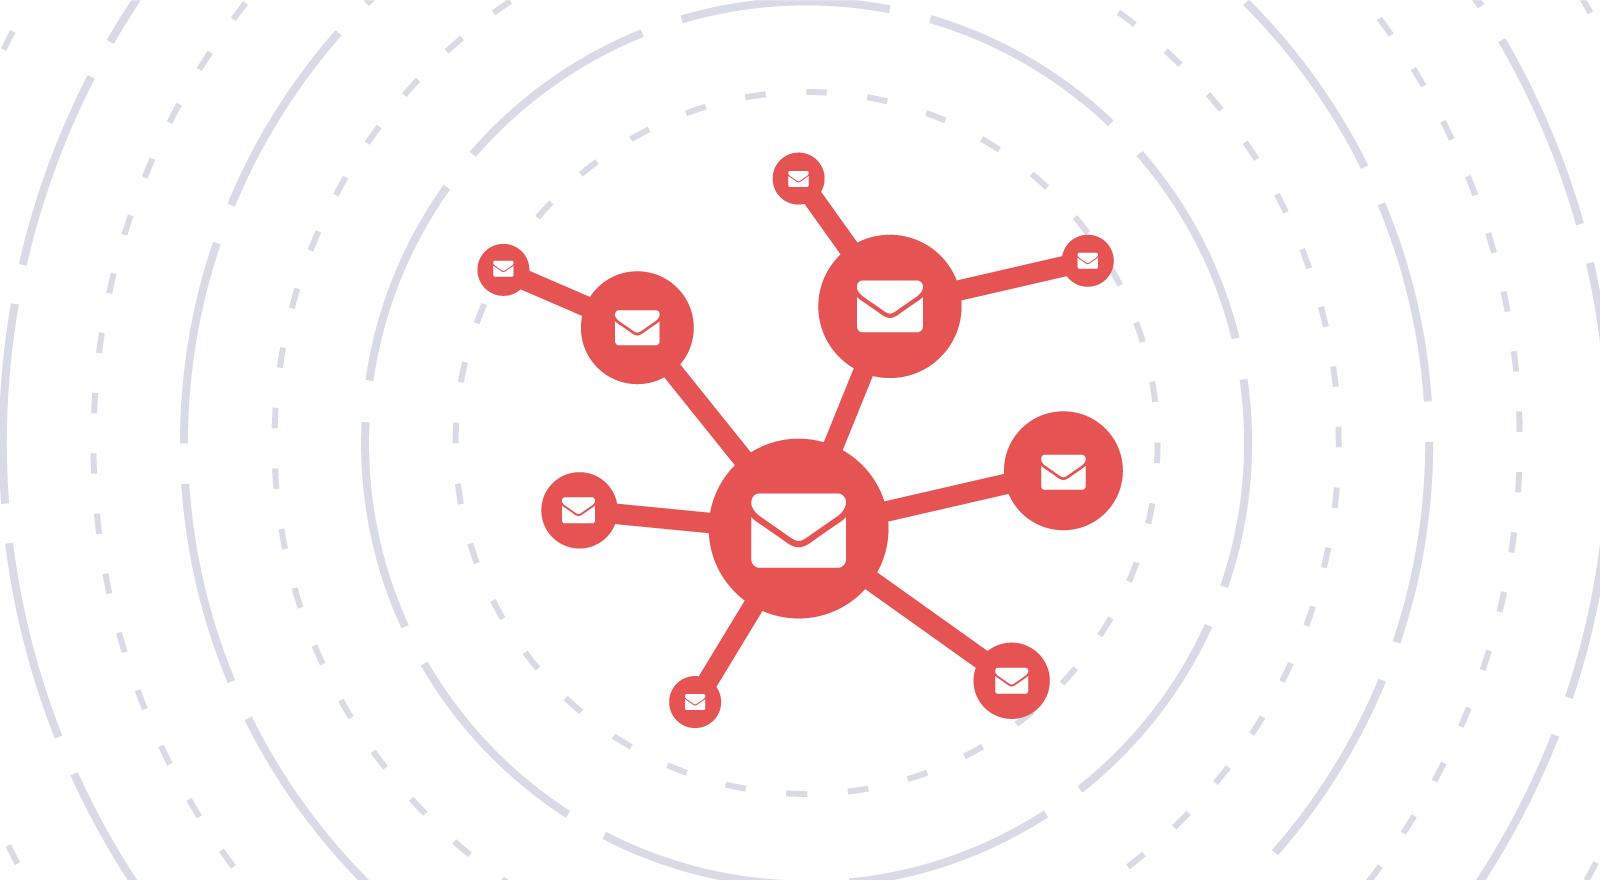 Connected email tracks